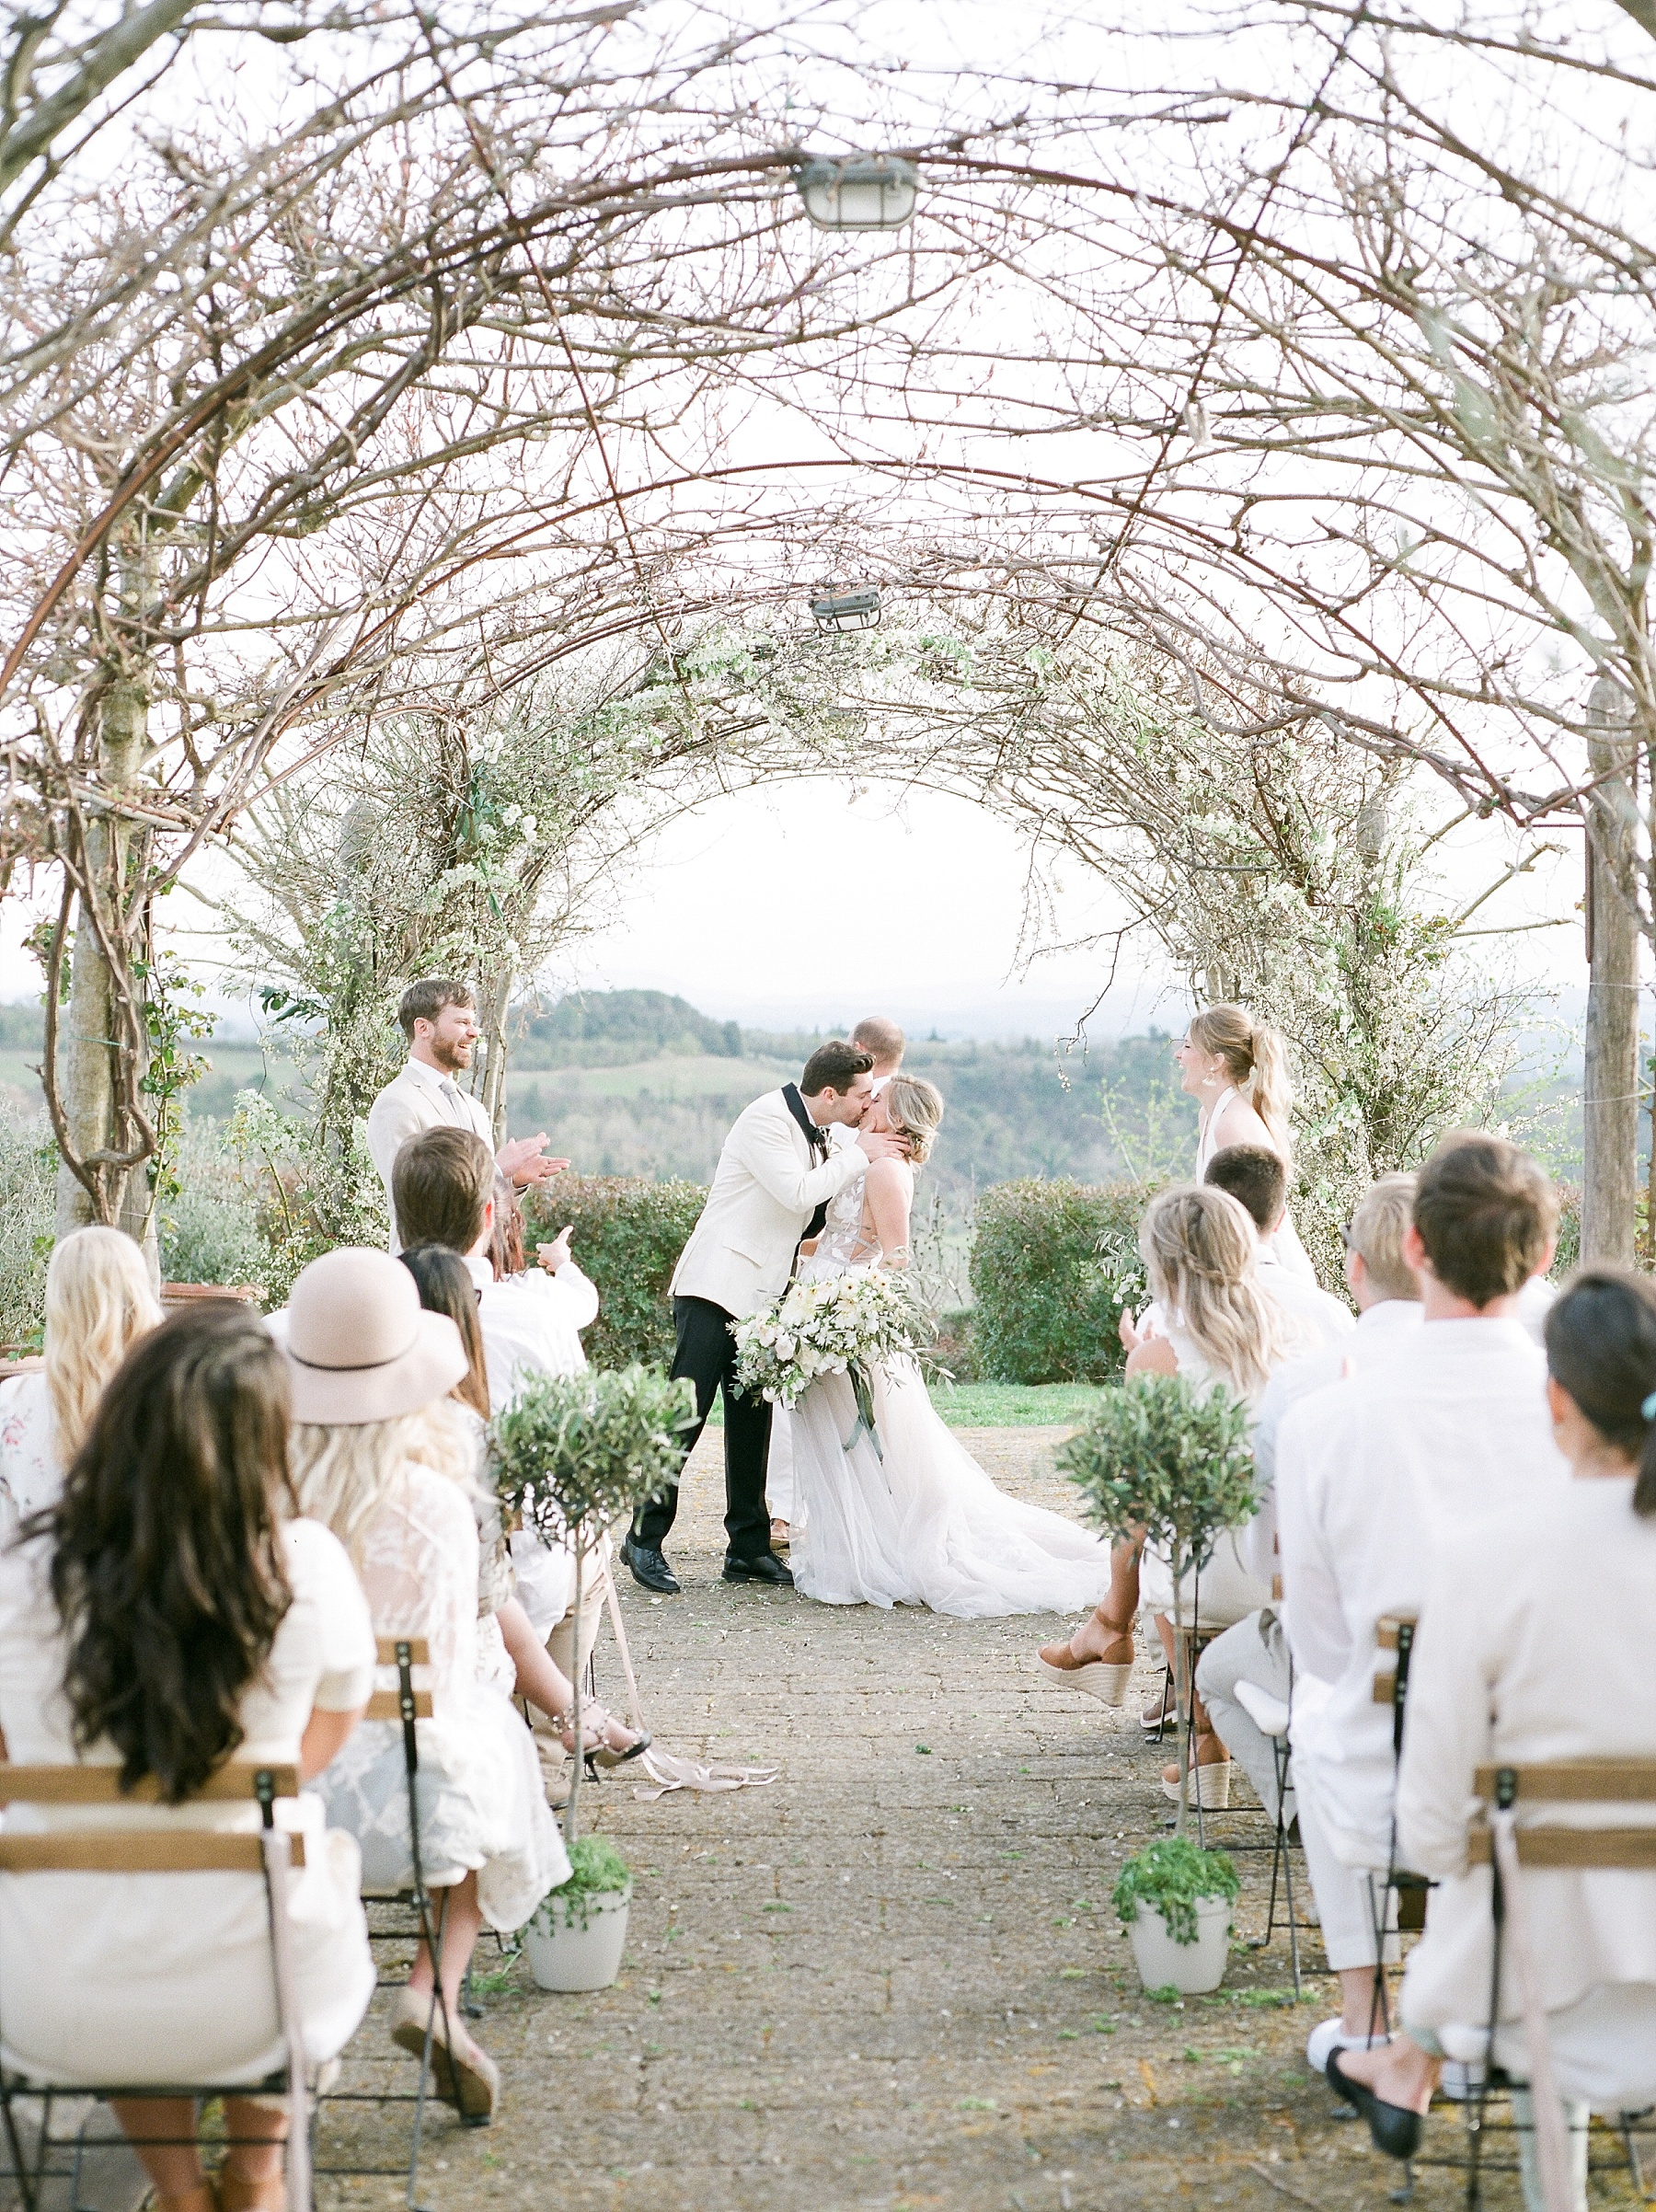 All White Destination Wedding in the Hills of Tuscany Italy at Estate Borgo Petrognano by Kelsi Kliethermes Photography_0049.jpg